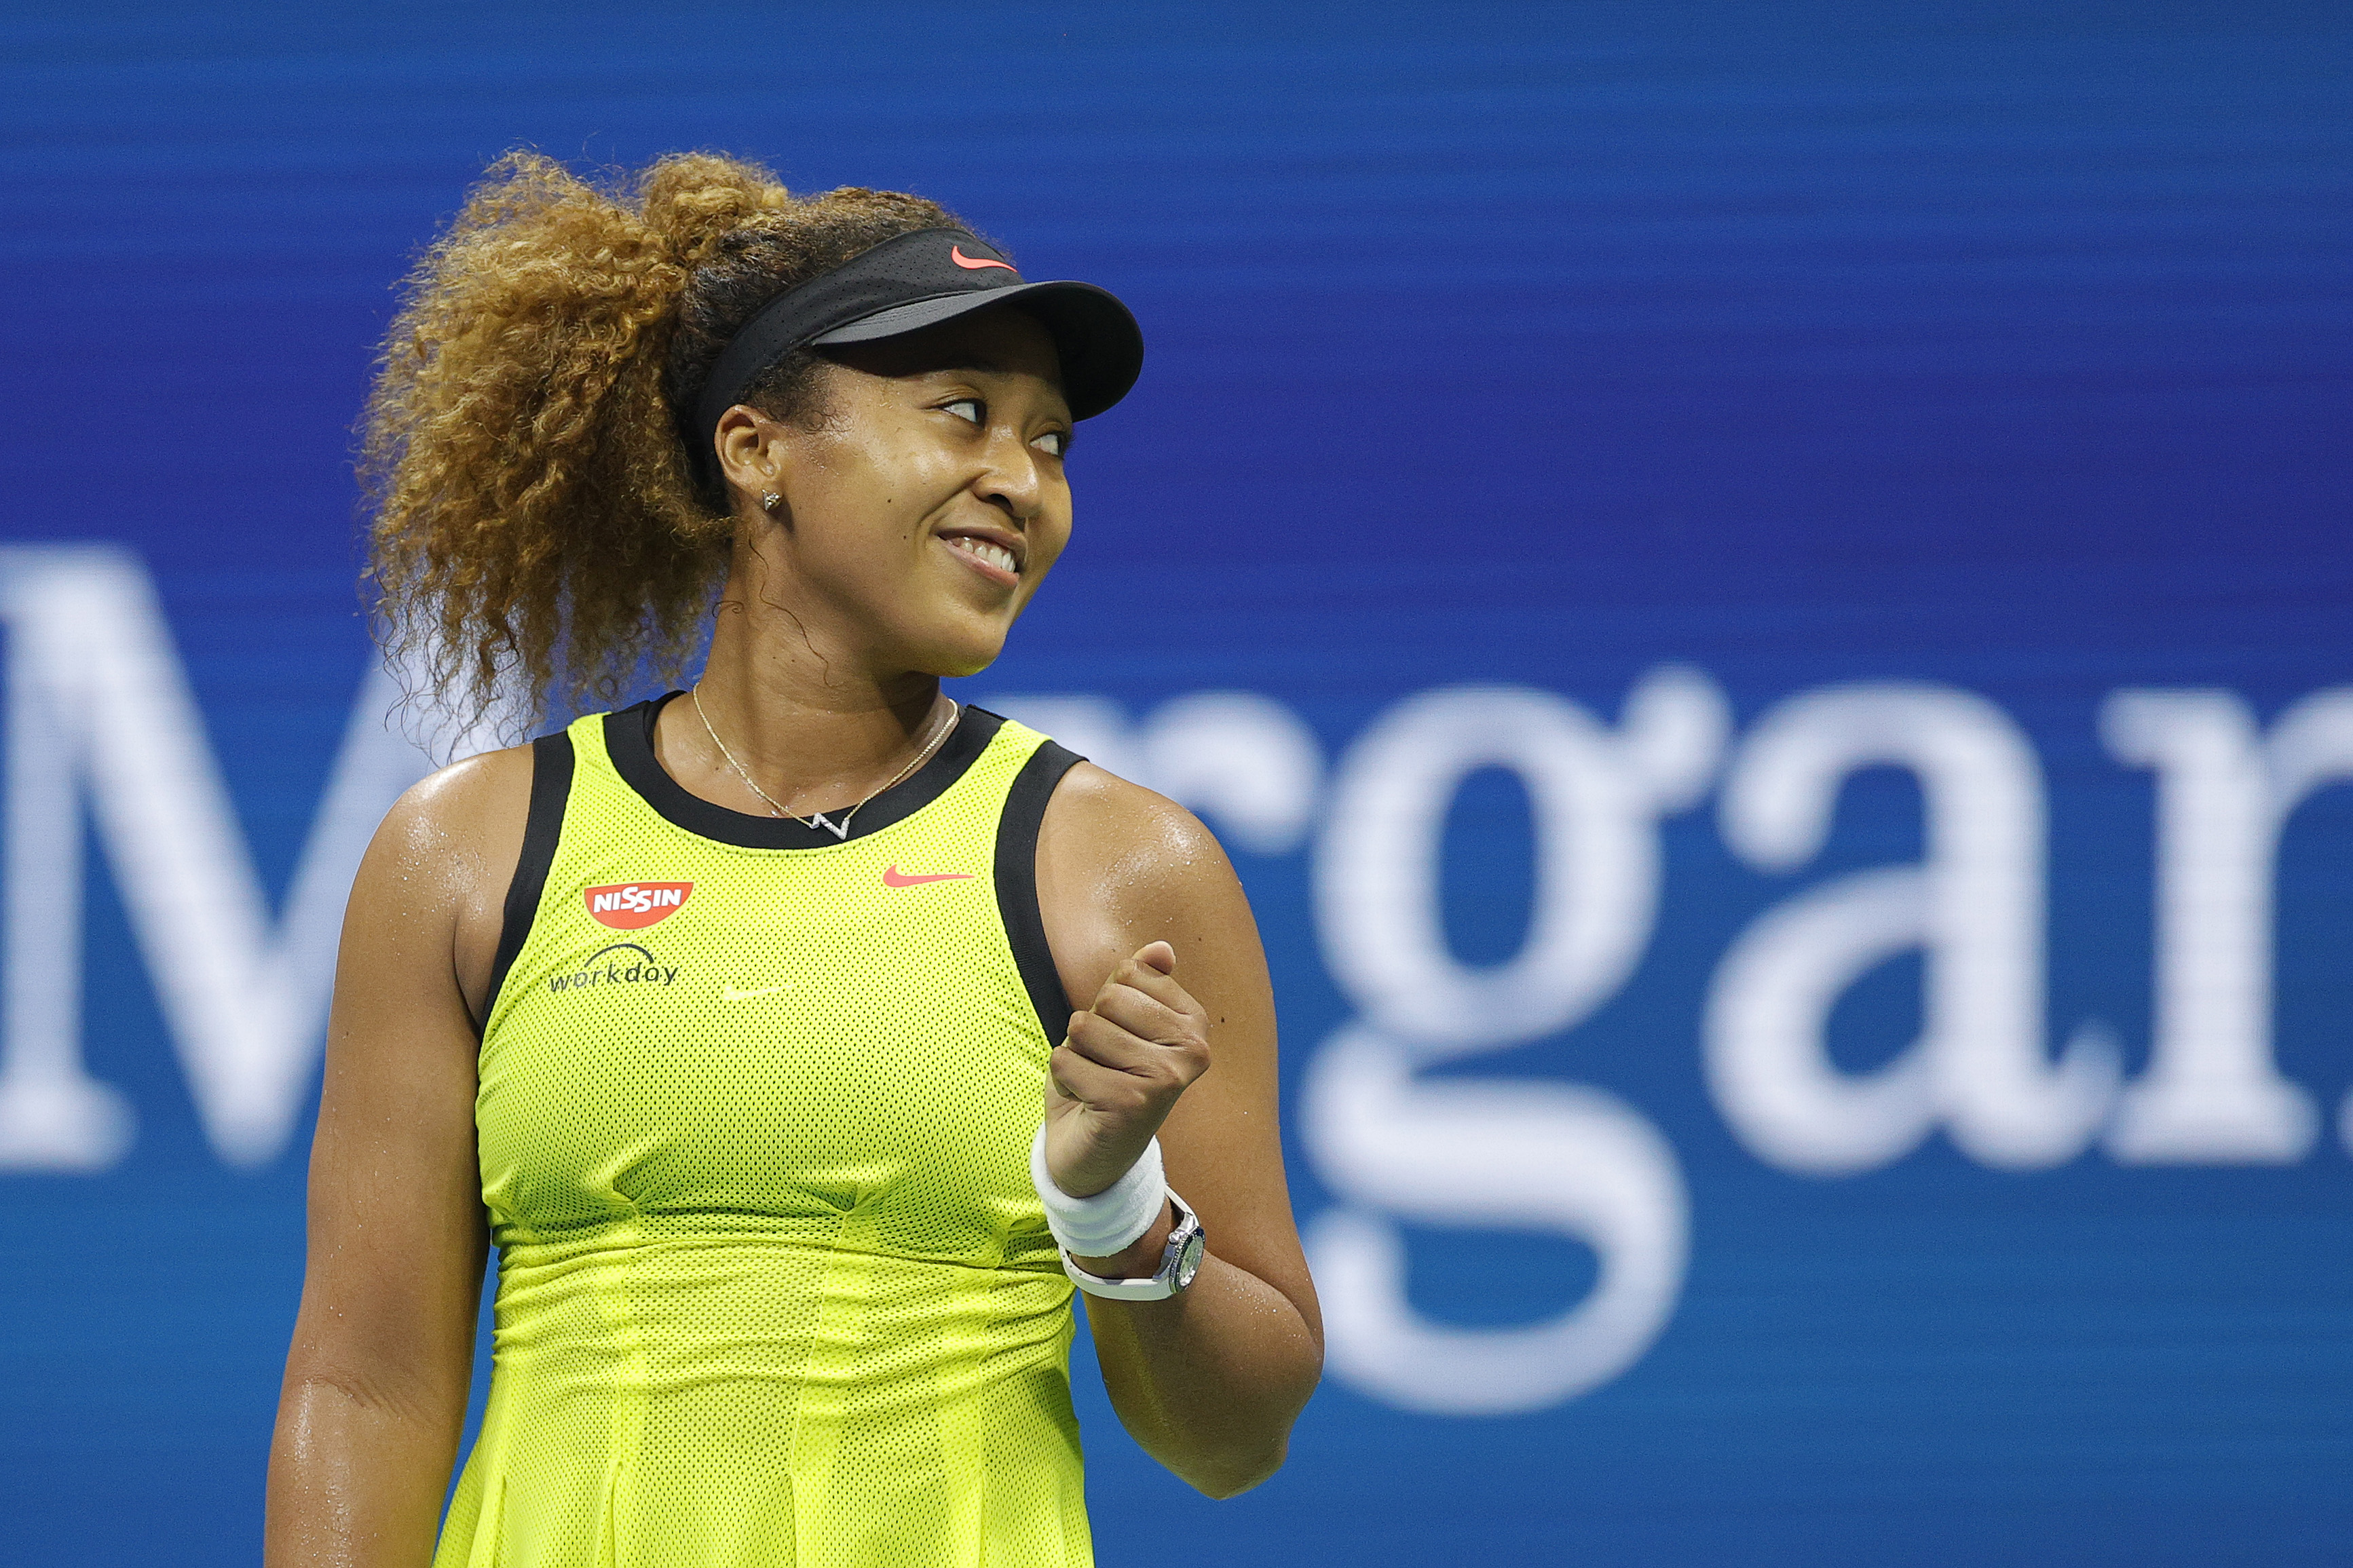 Naomi Osaka of Japan celebrates against Marie Bouzkova (not pictured) of the Czech Republic during their Women's Singles first round match on Day One of the 2021 US Open at the Billie Jean King National Tennis Center on August 30, 2021 in the Flushing neighborhood of the Queens borough of New York City.